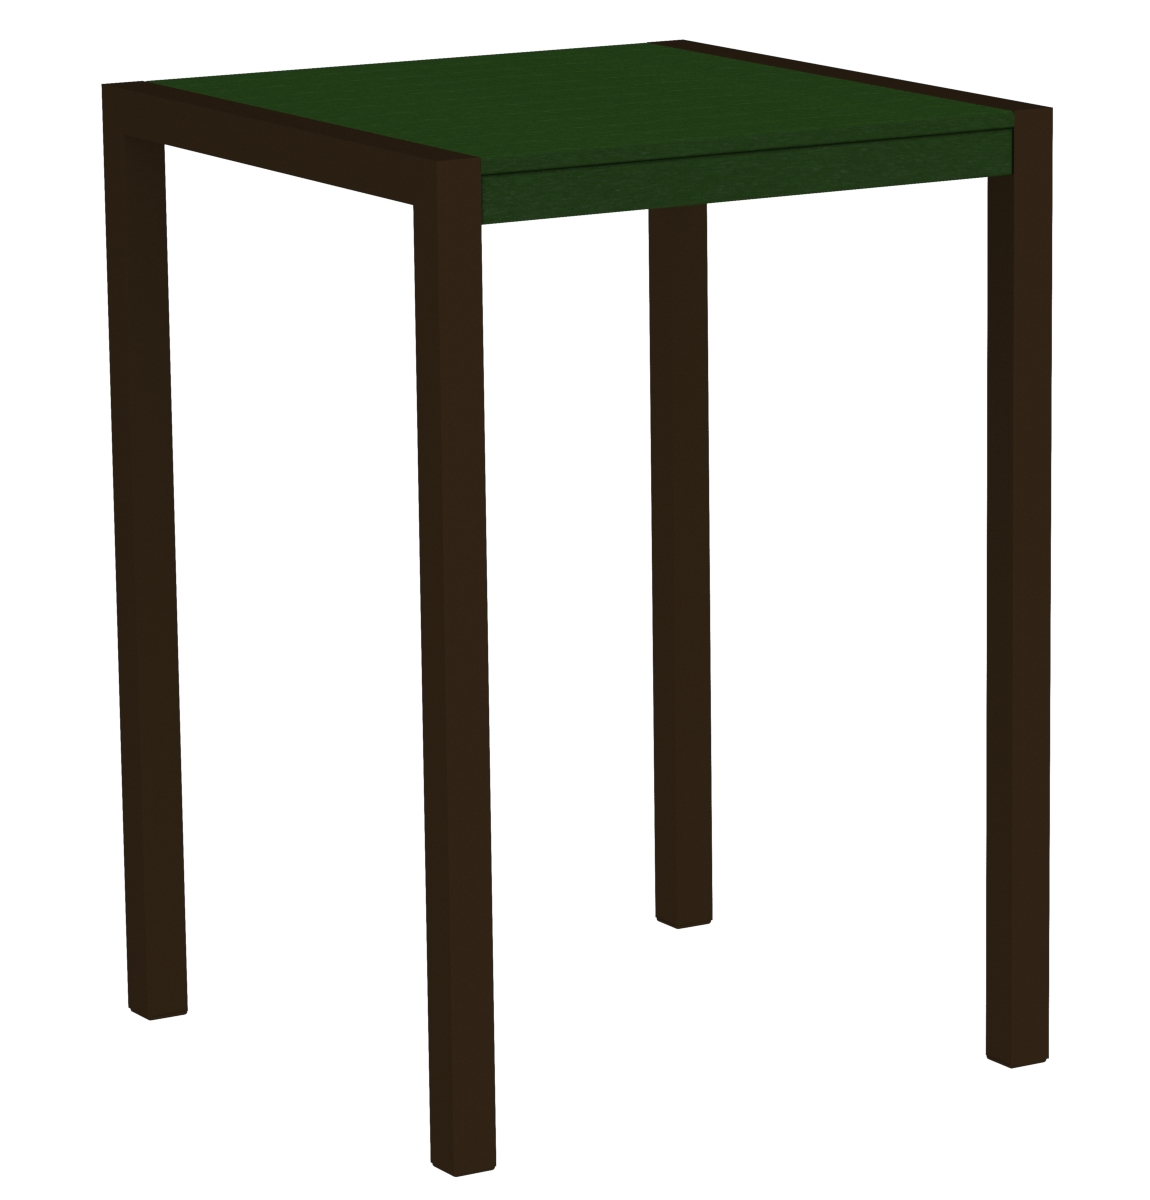 POLYWOOD 8002-16GR MOD 30' Bar Table in Textured Bronze / Green